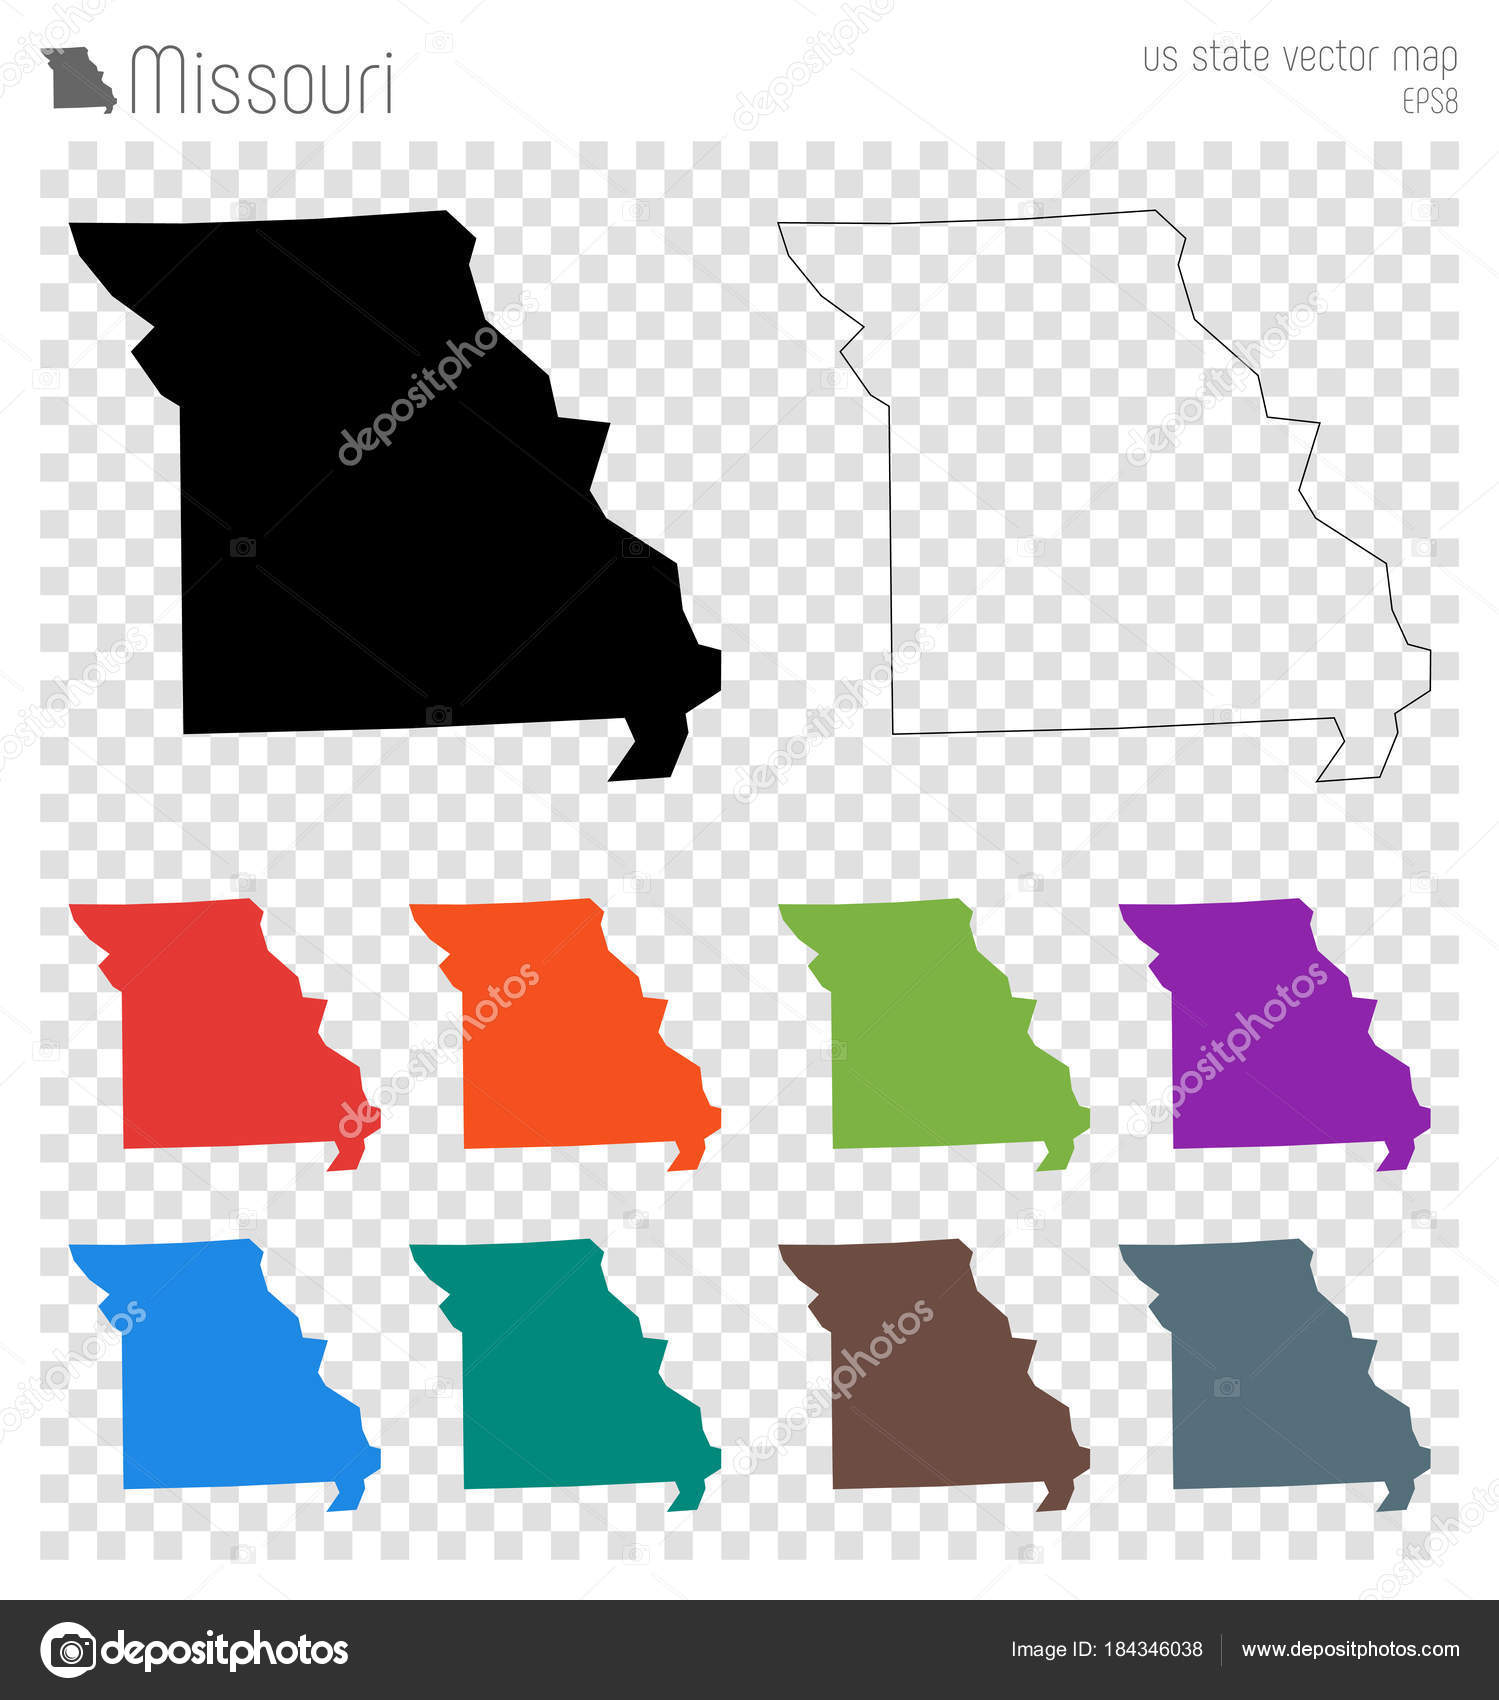 Missouri high detailed map Us state silhouette icon Isolated ...